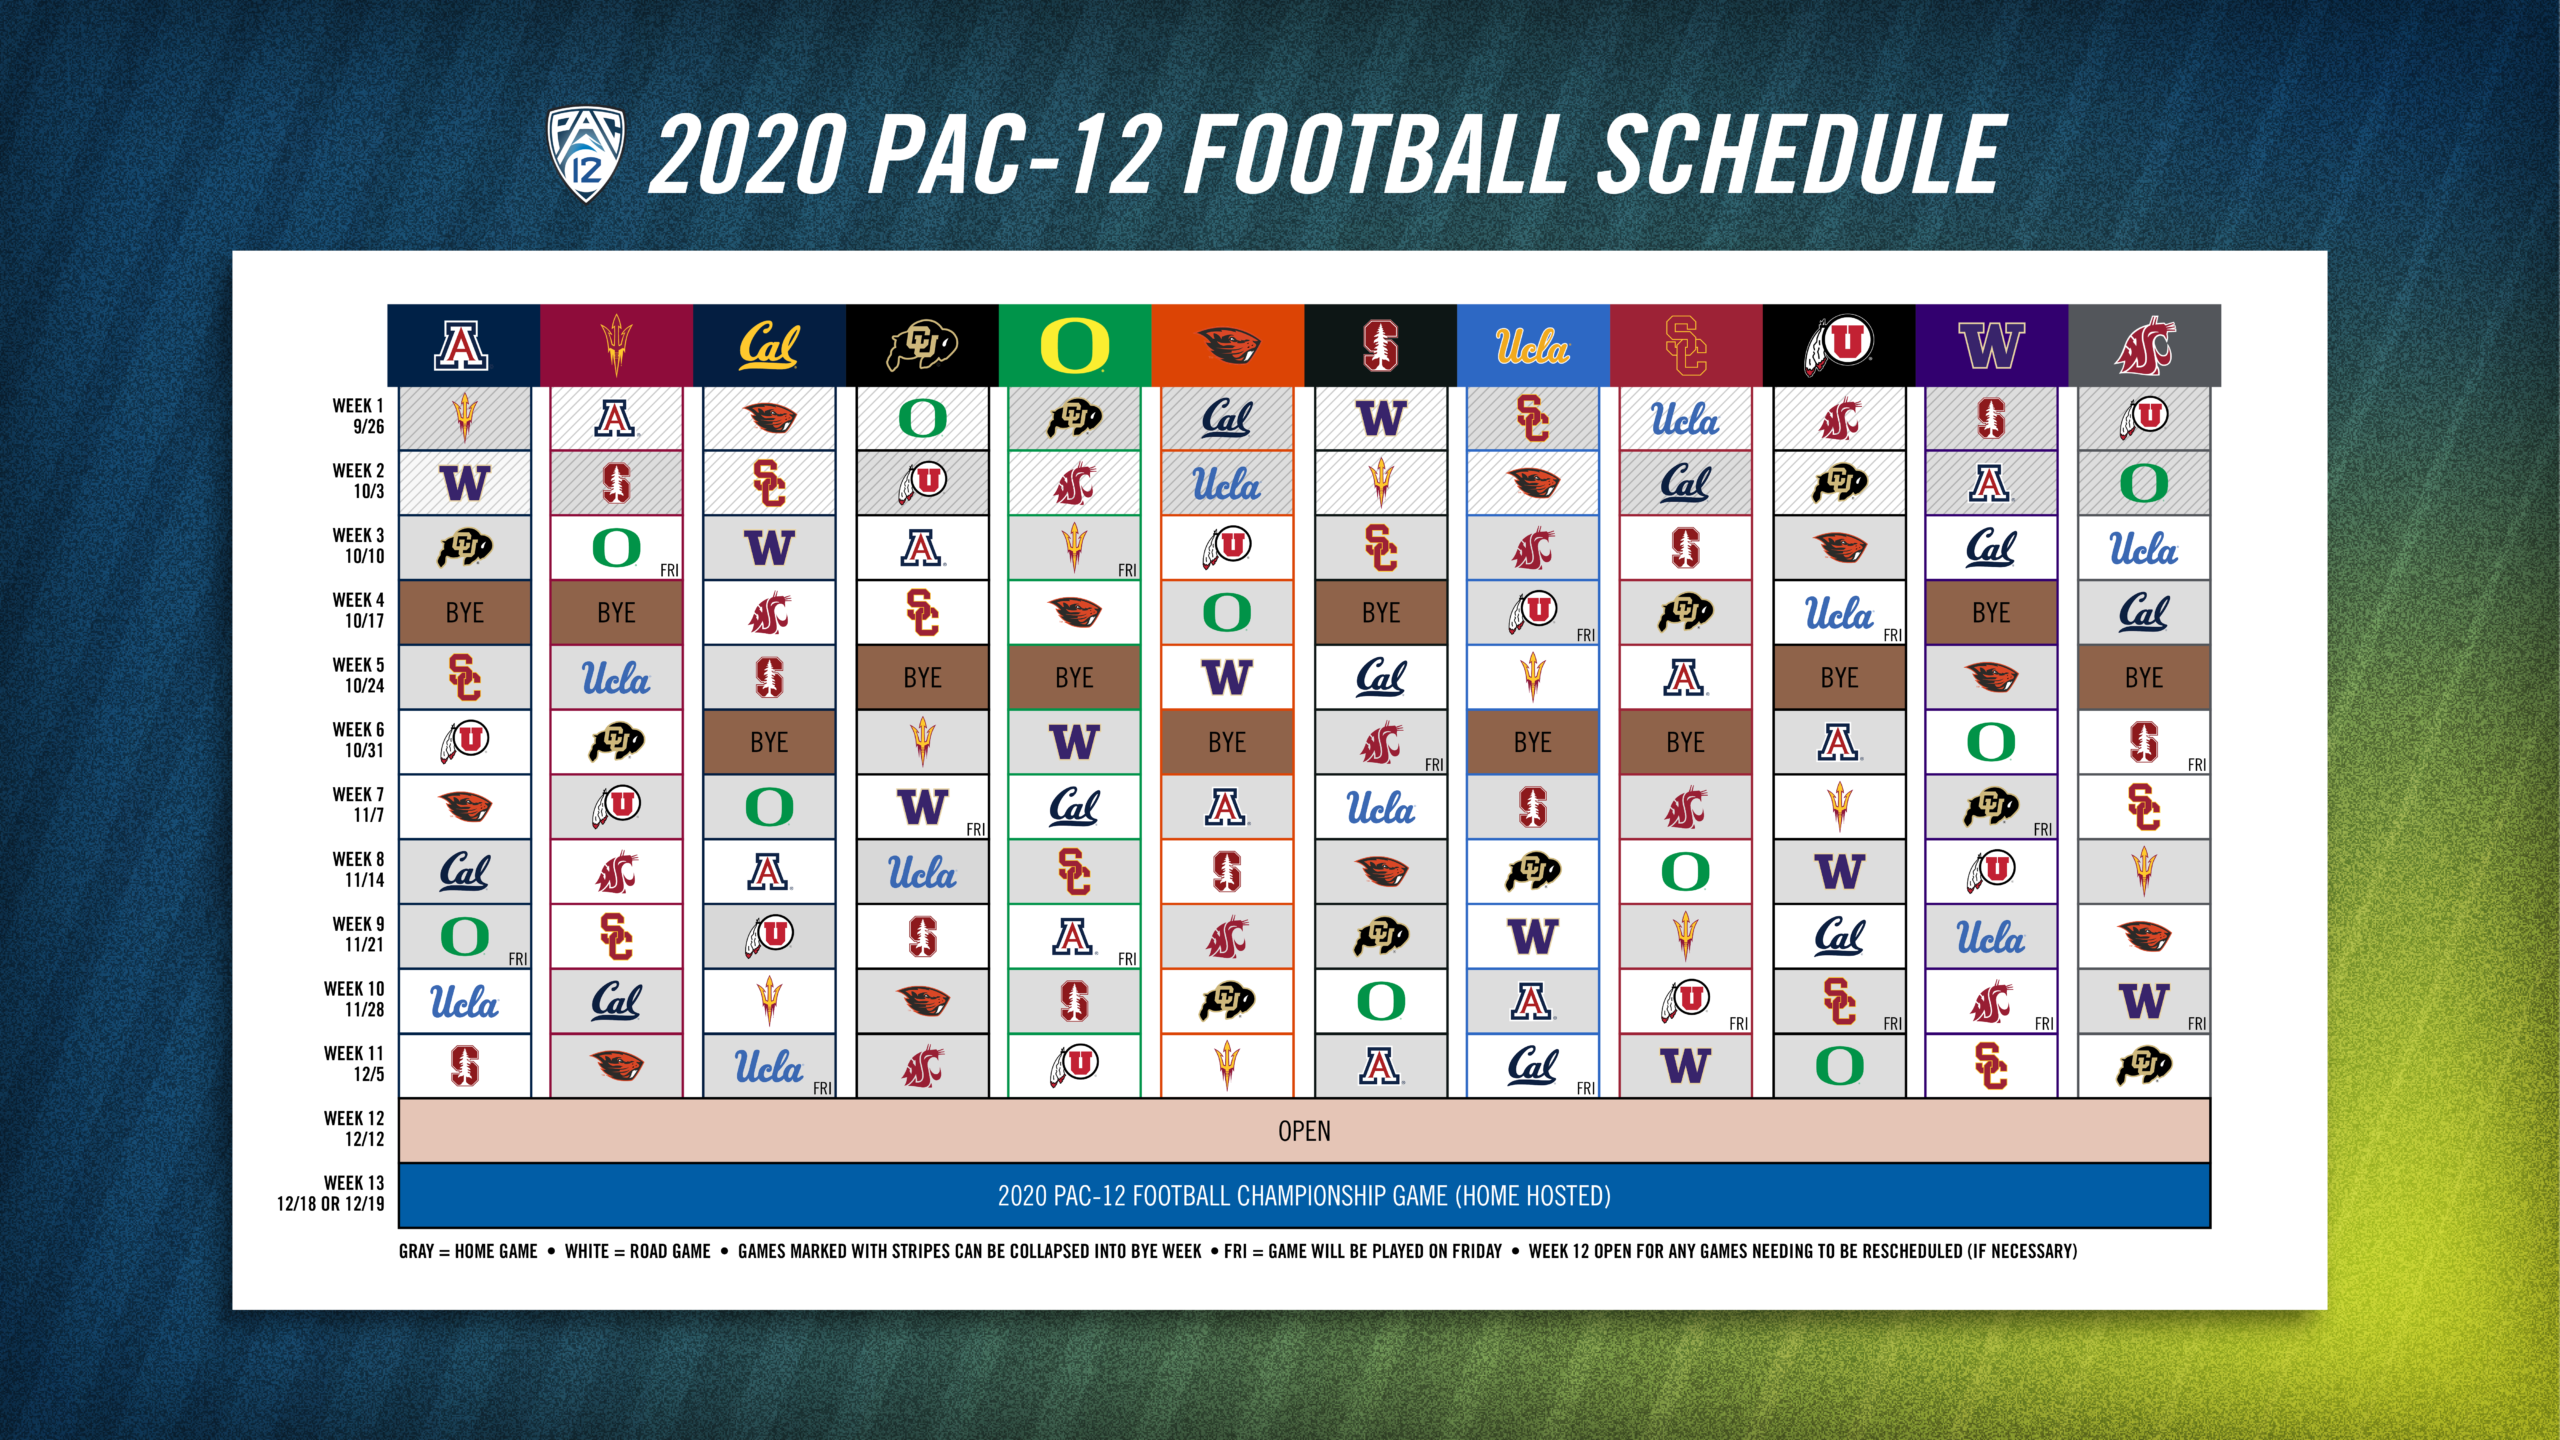 Pac-12 Approves 2020 Football Schedule & Plans For Fall with Printable Nfl 2021 Schedule